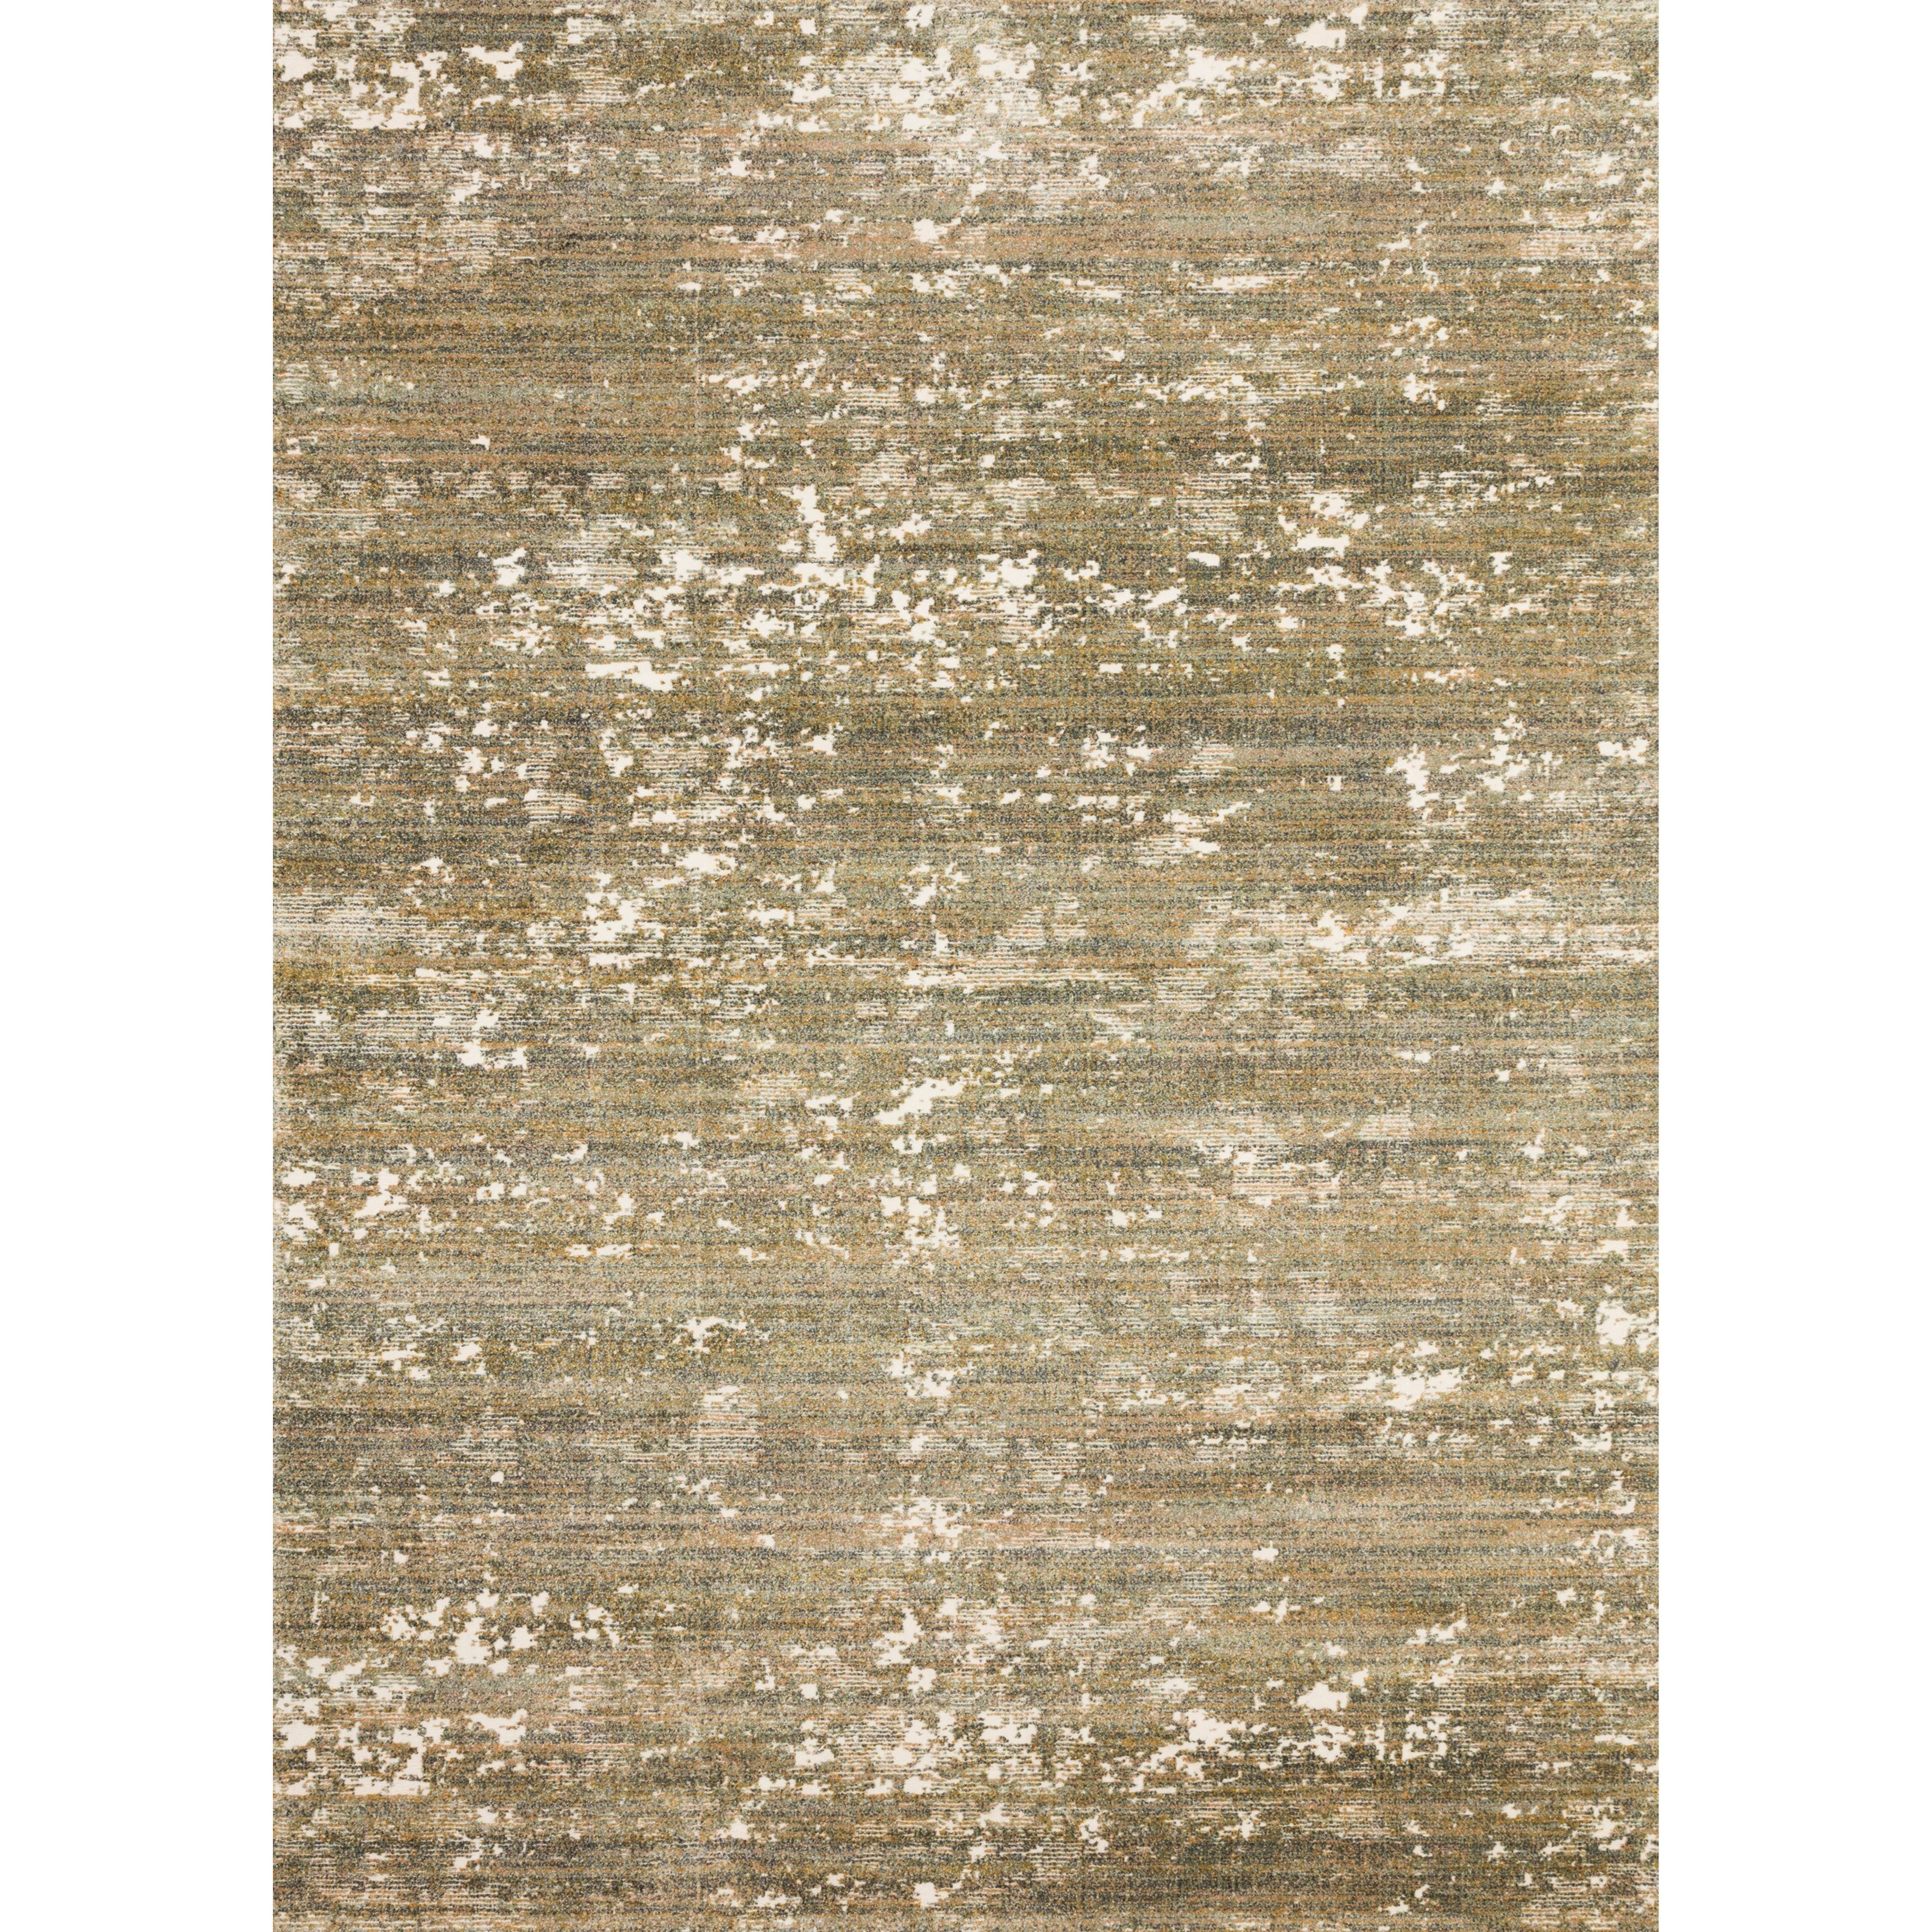 """Augustus 3'7"""" x 5'7"""" Moss / Spice Rug by Loloi Rugs at Virginia Furniture Market"""